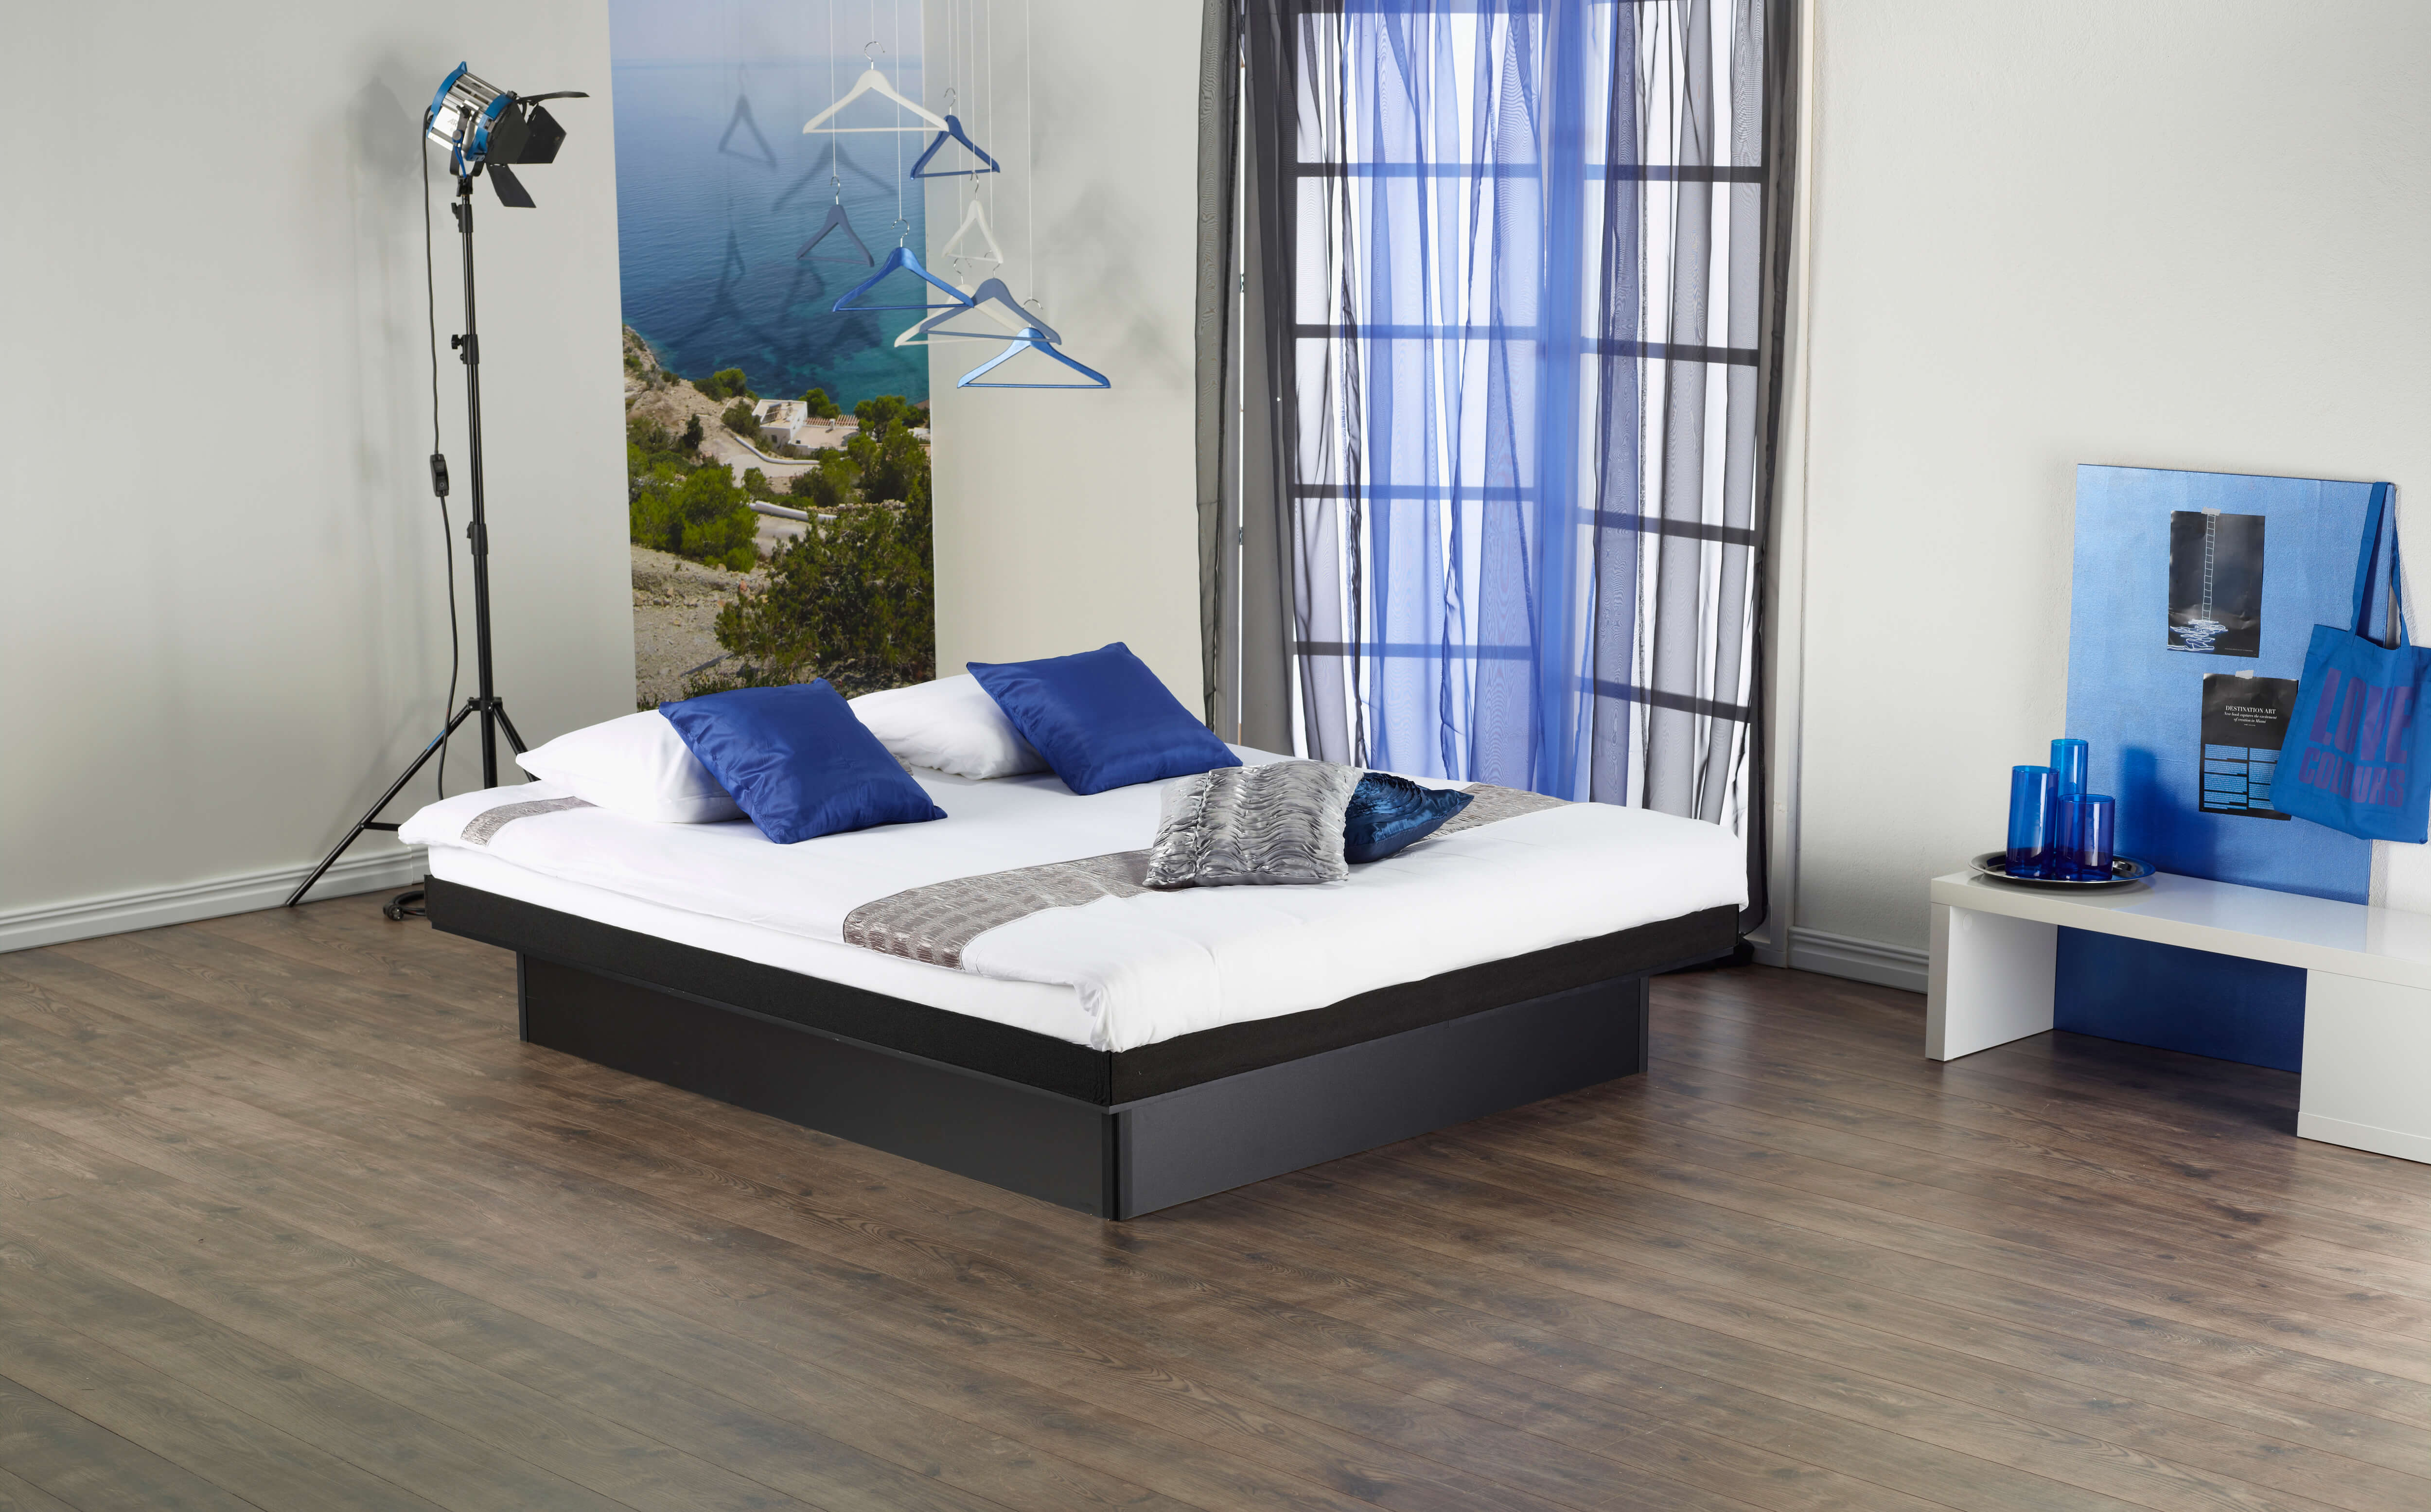 Waterbed €1.995